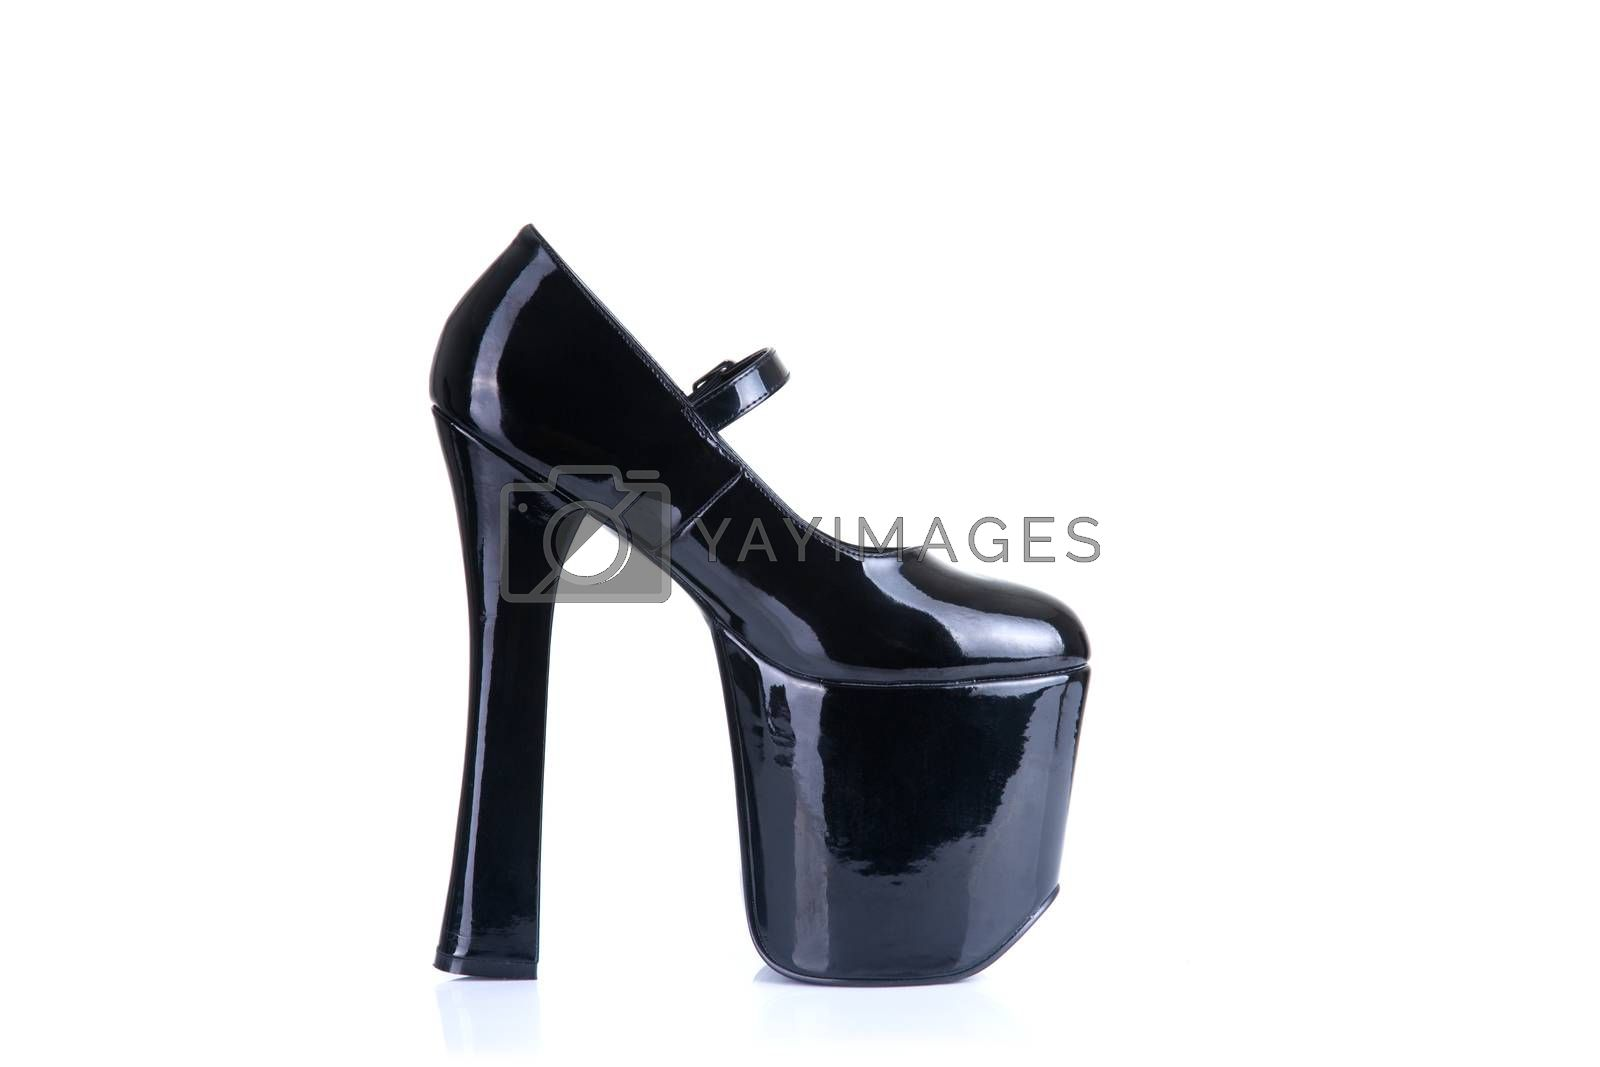 High heel fetish shoe, isolated on white background